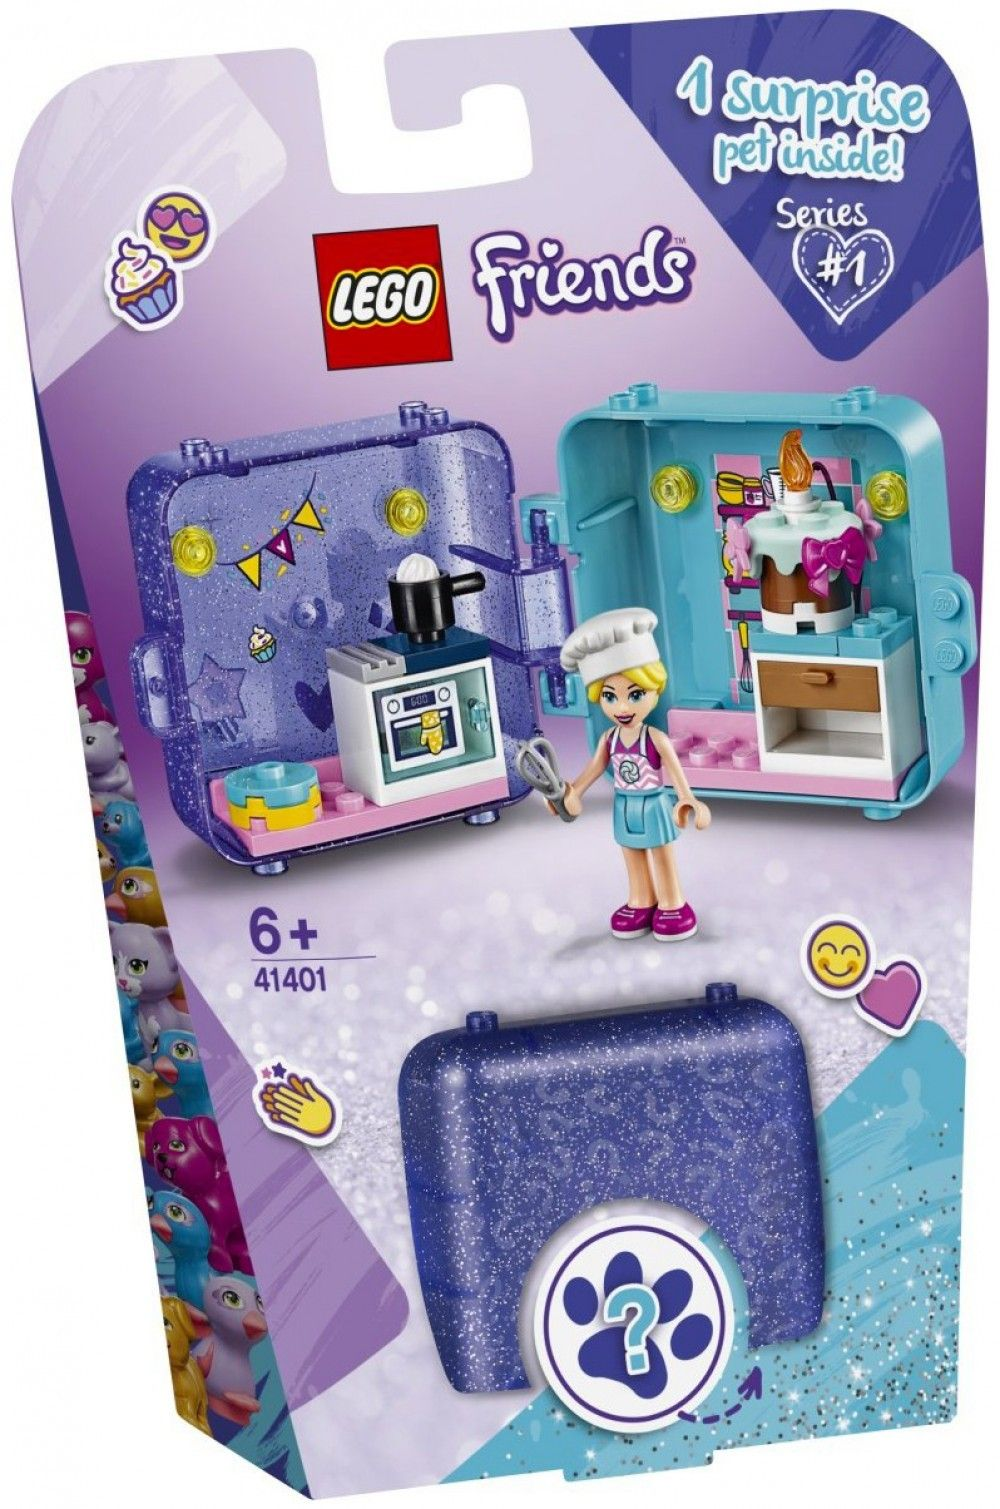 Nouveau LEGO Friends 41401 Stephanie's Play Cube // Janvier 2020